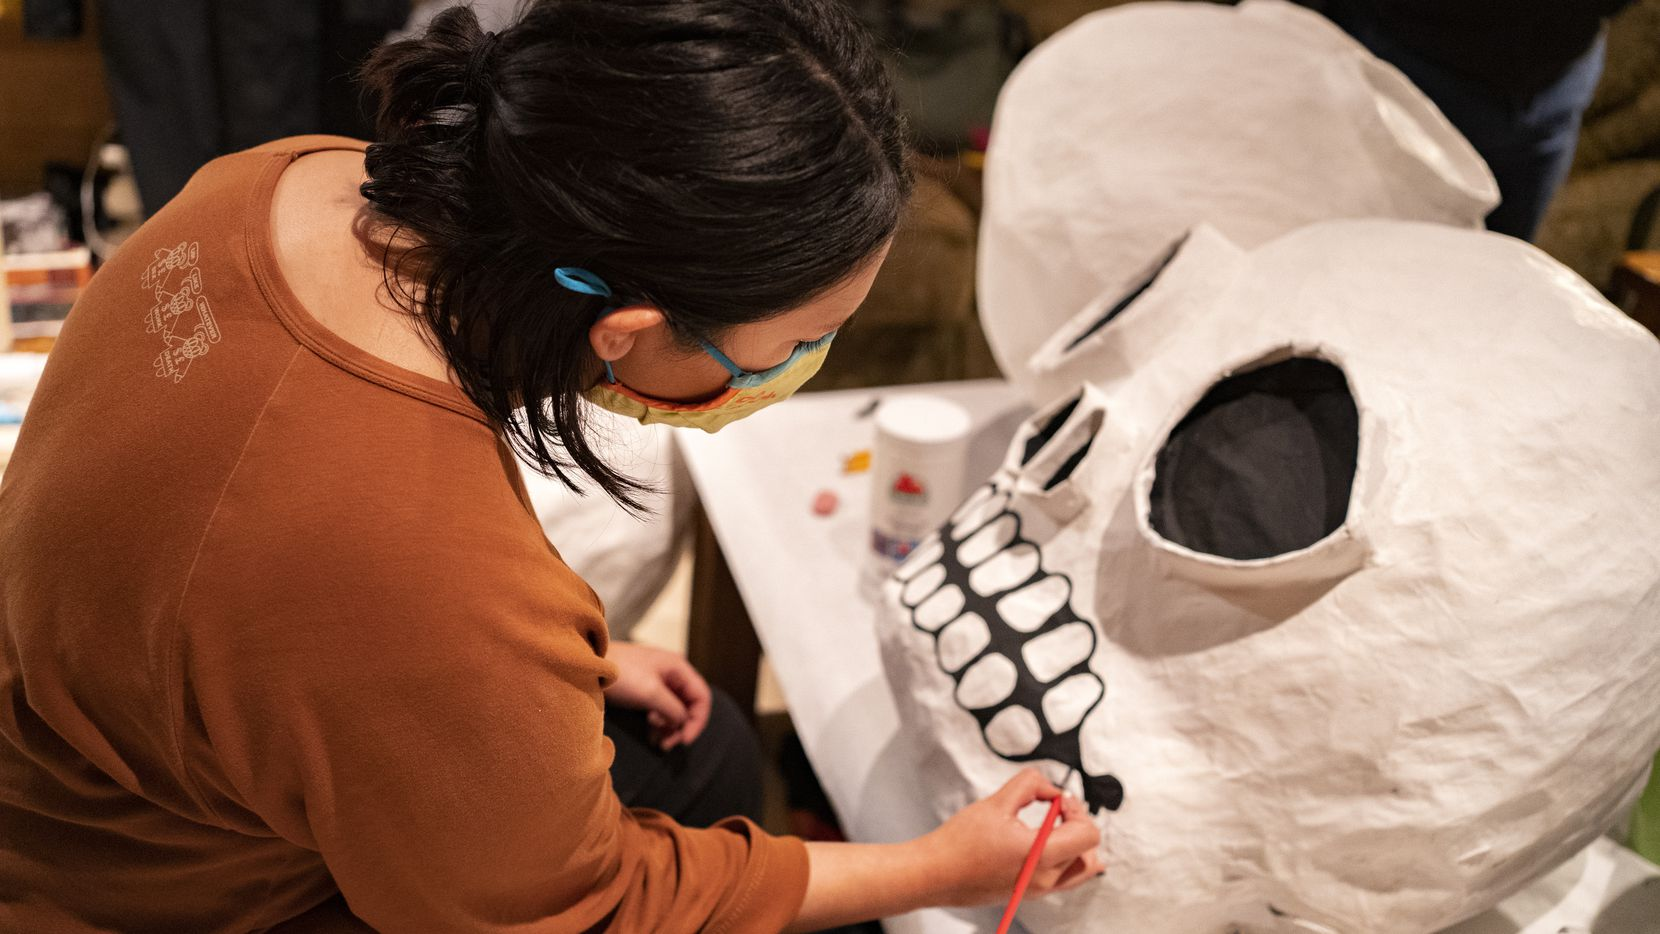 Paloma Salas works on her Day of the Dead puppet on the rainy evening of October 27, 2020 in Dallas. The puppet will be used in a public protest over the many deaths in the COVID-19 pandemic.